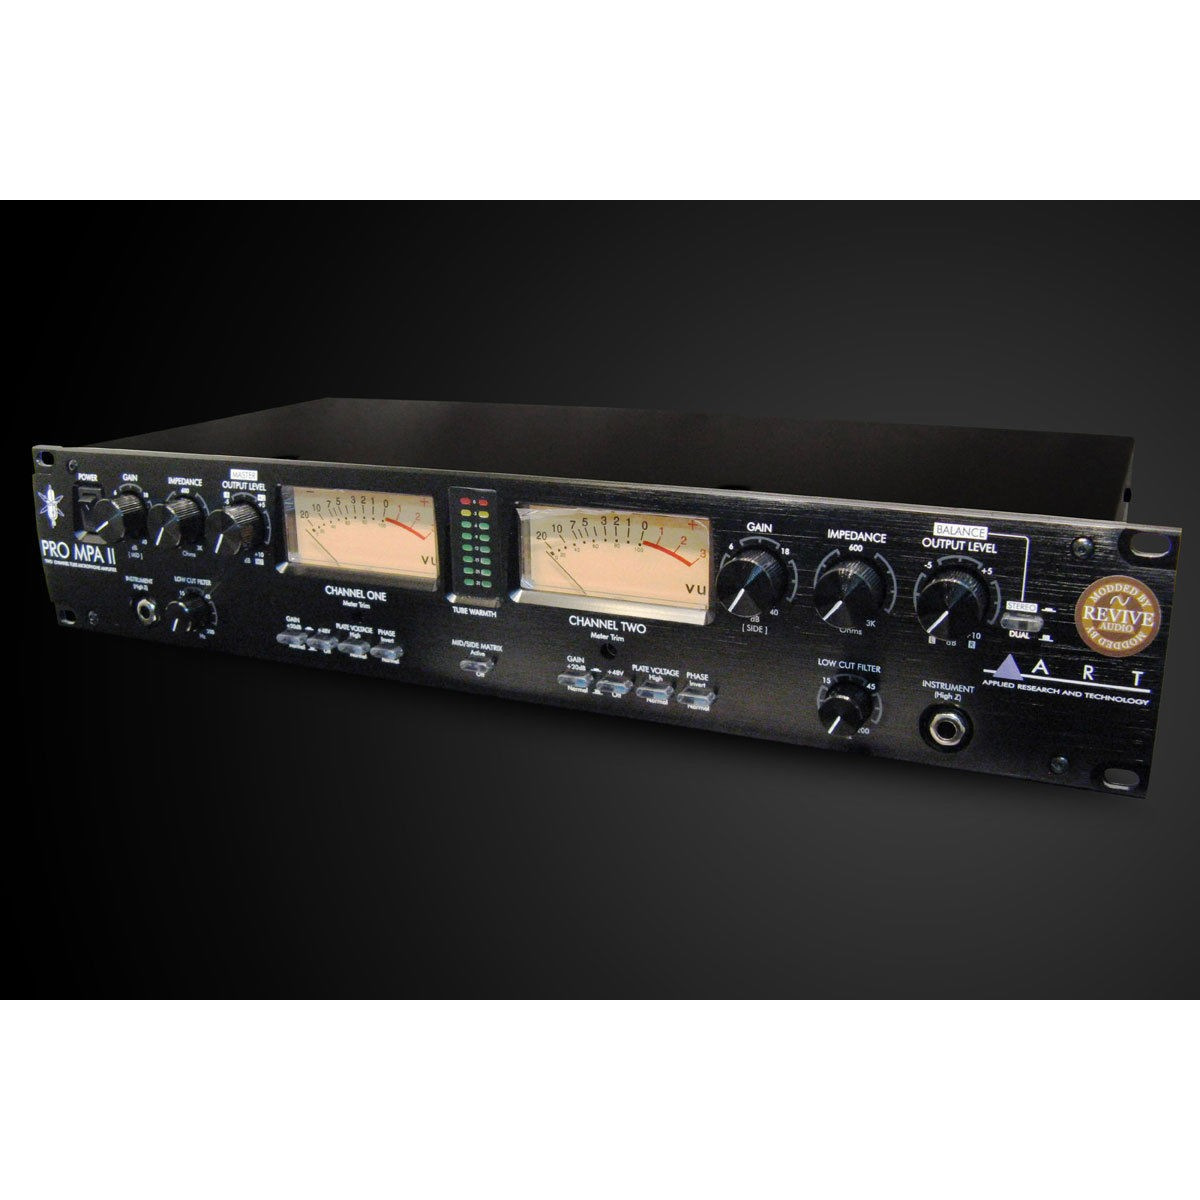 MODIFIED: BEHRINGER ADA8200 EIGHT CHANNEL CONVERTER, PREAMP